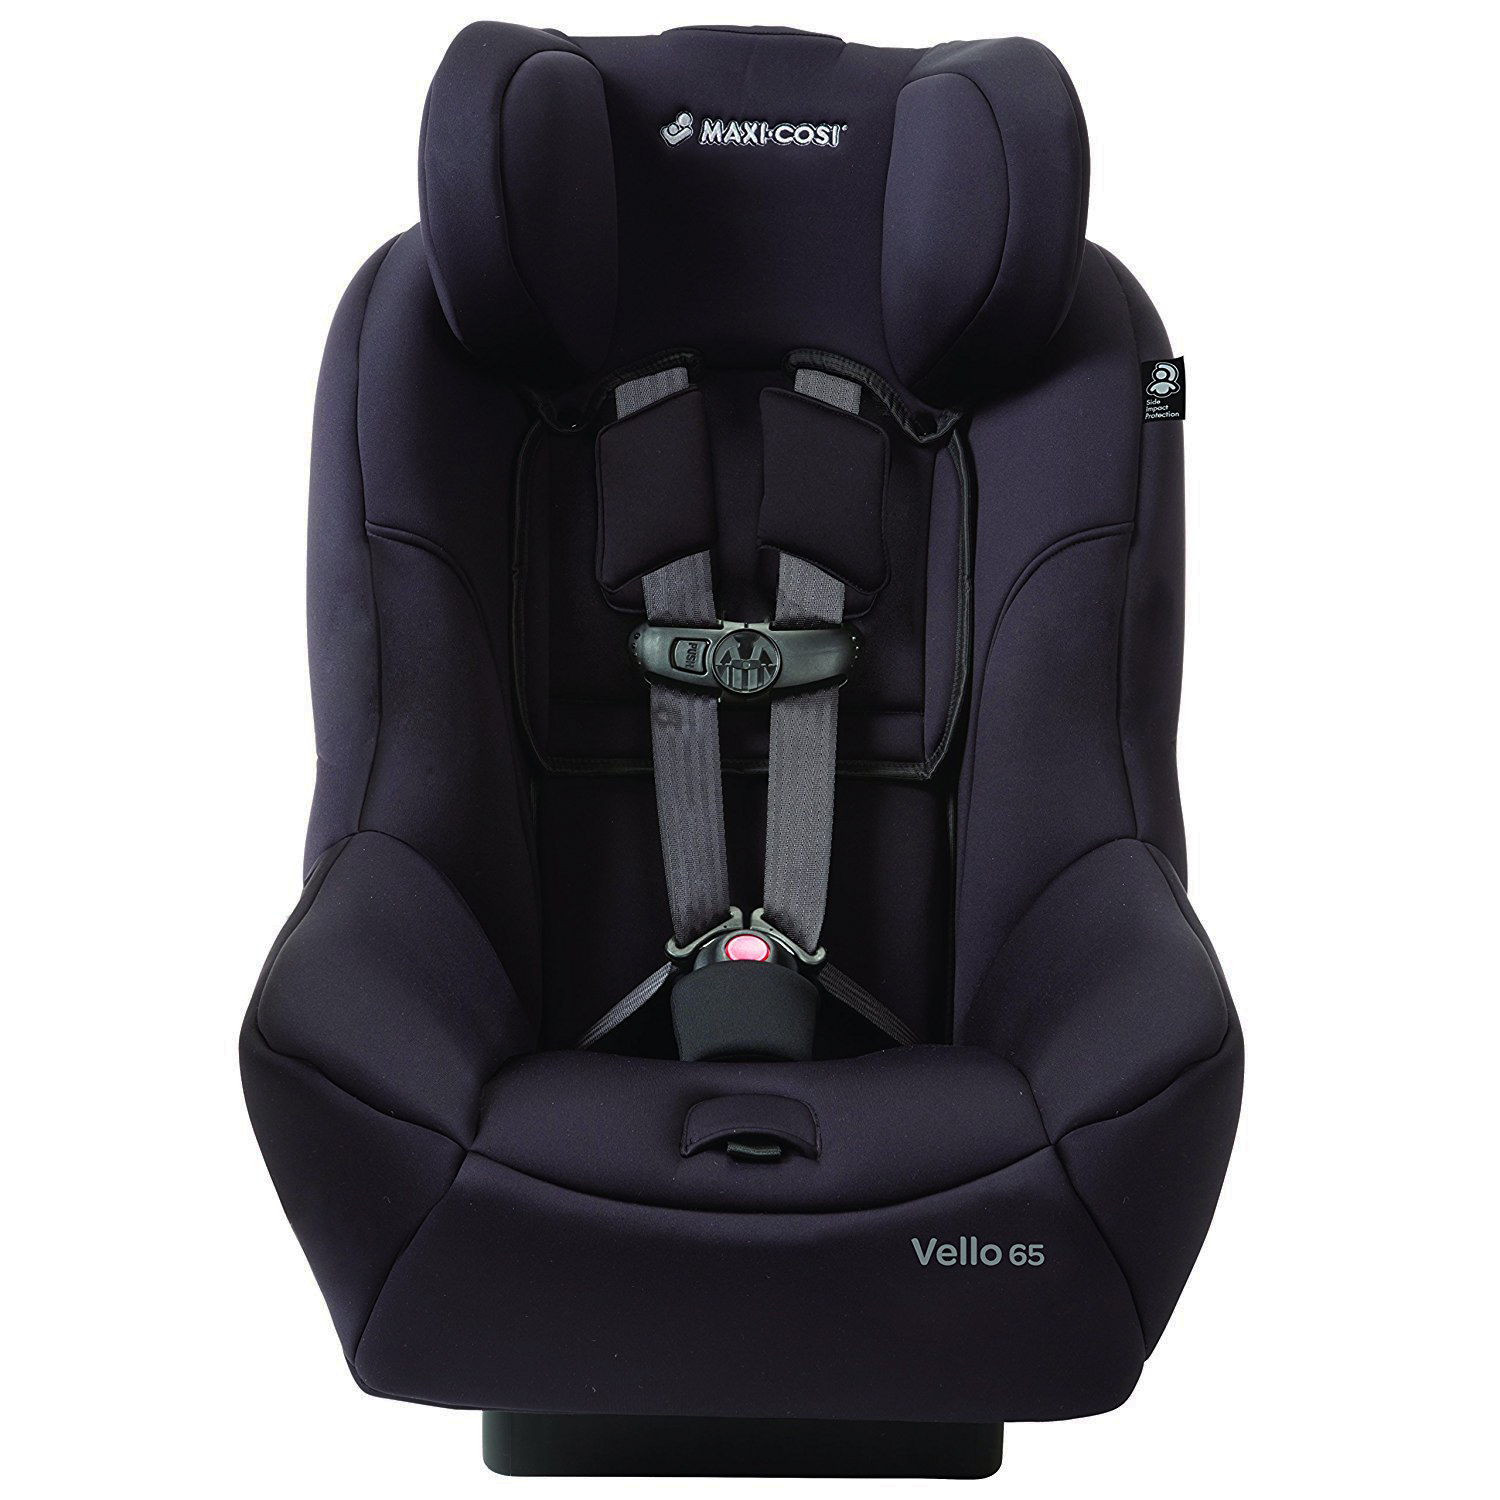 maxi cosi vello 65 baby infant to toddler easy clean convertible car seat pink ebay. Black Bedroom Furniture Sets. Home Design Ideas